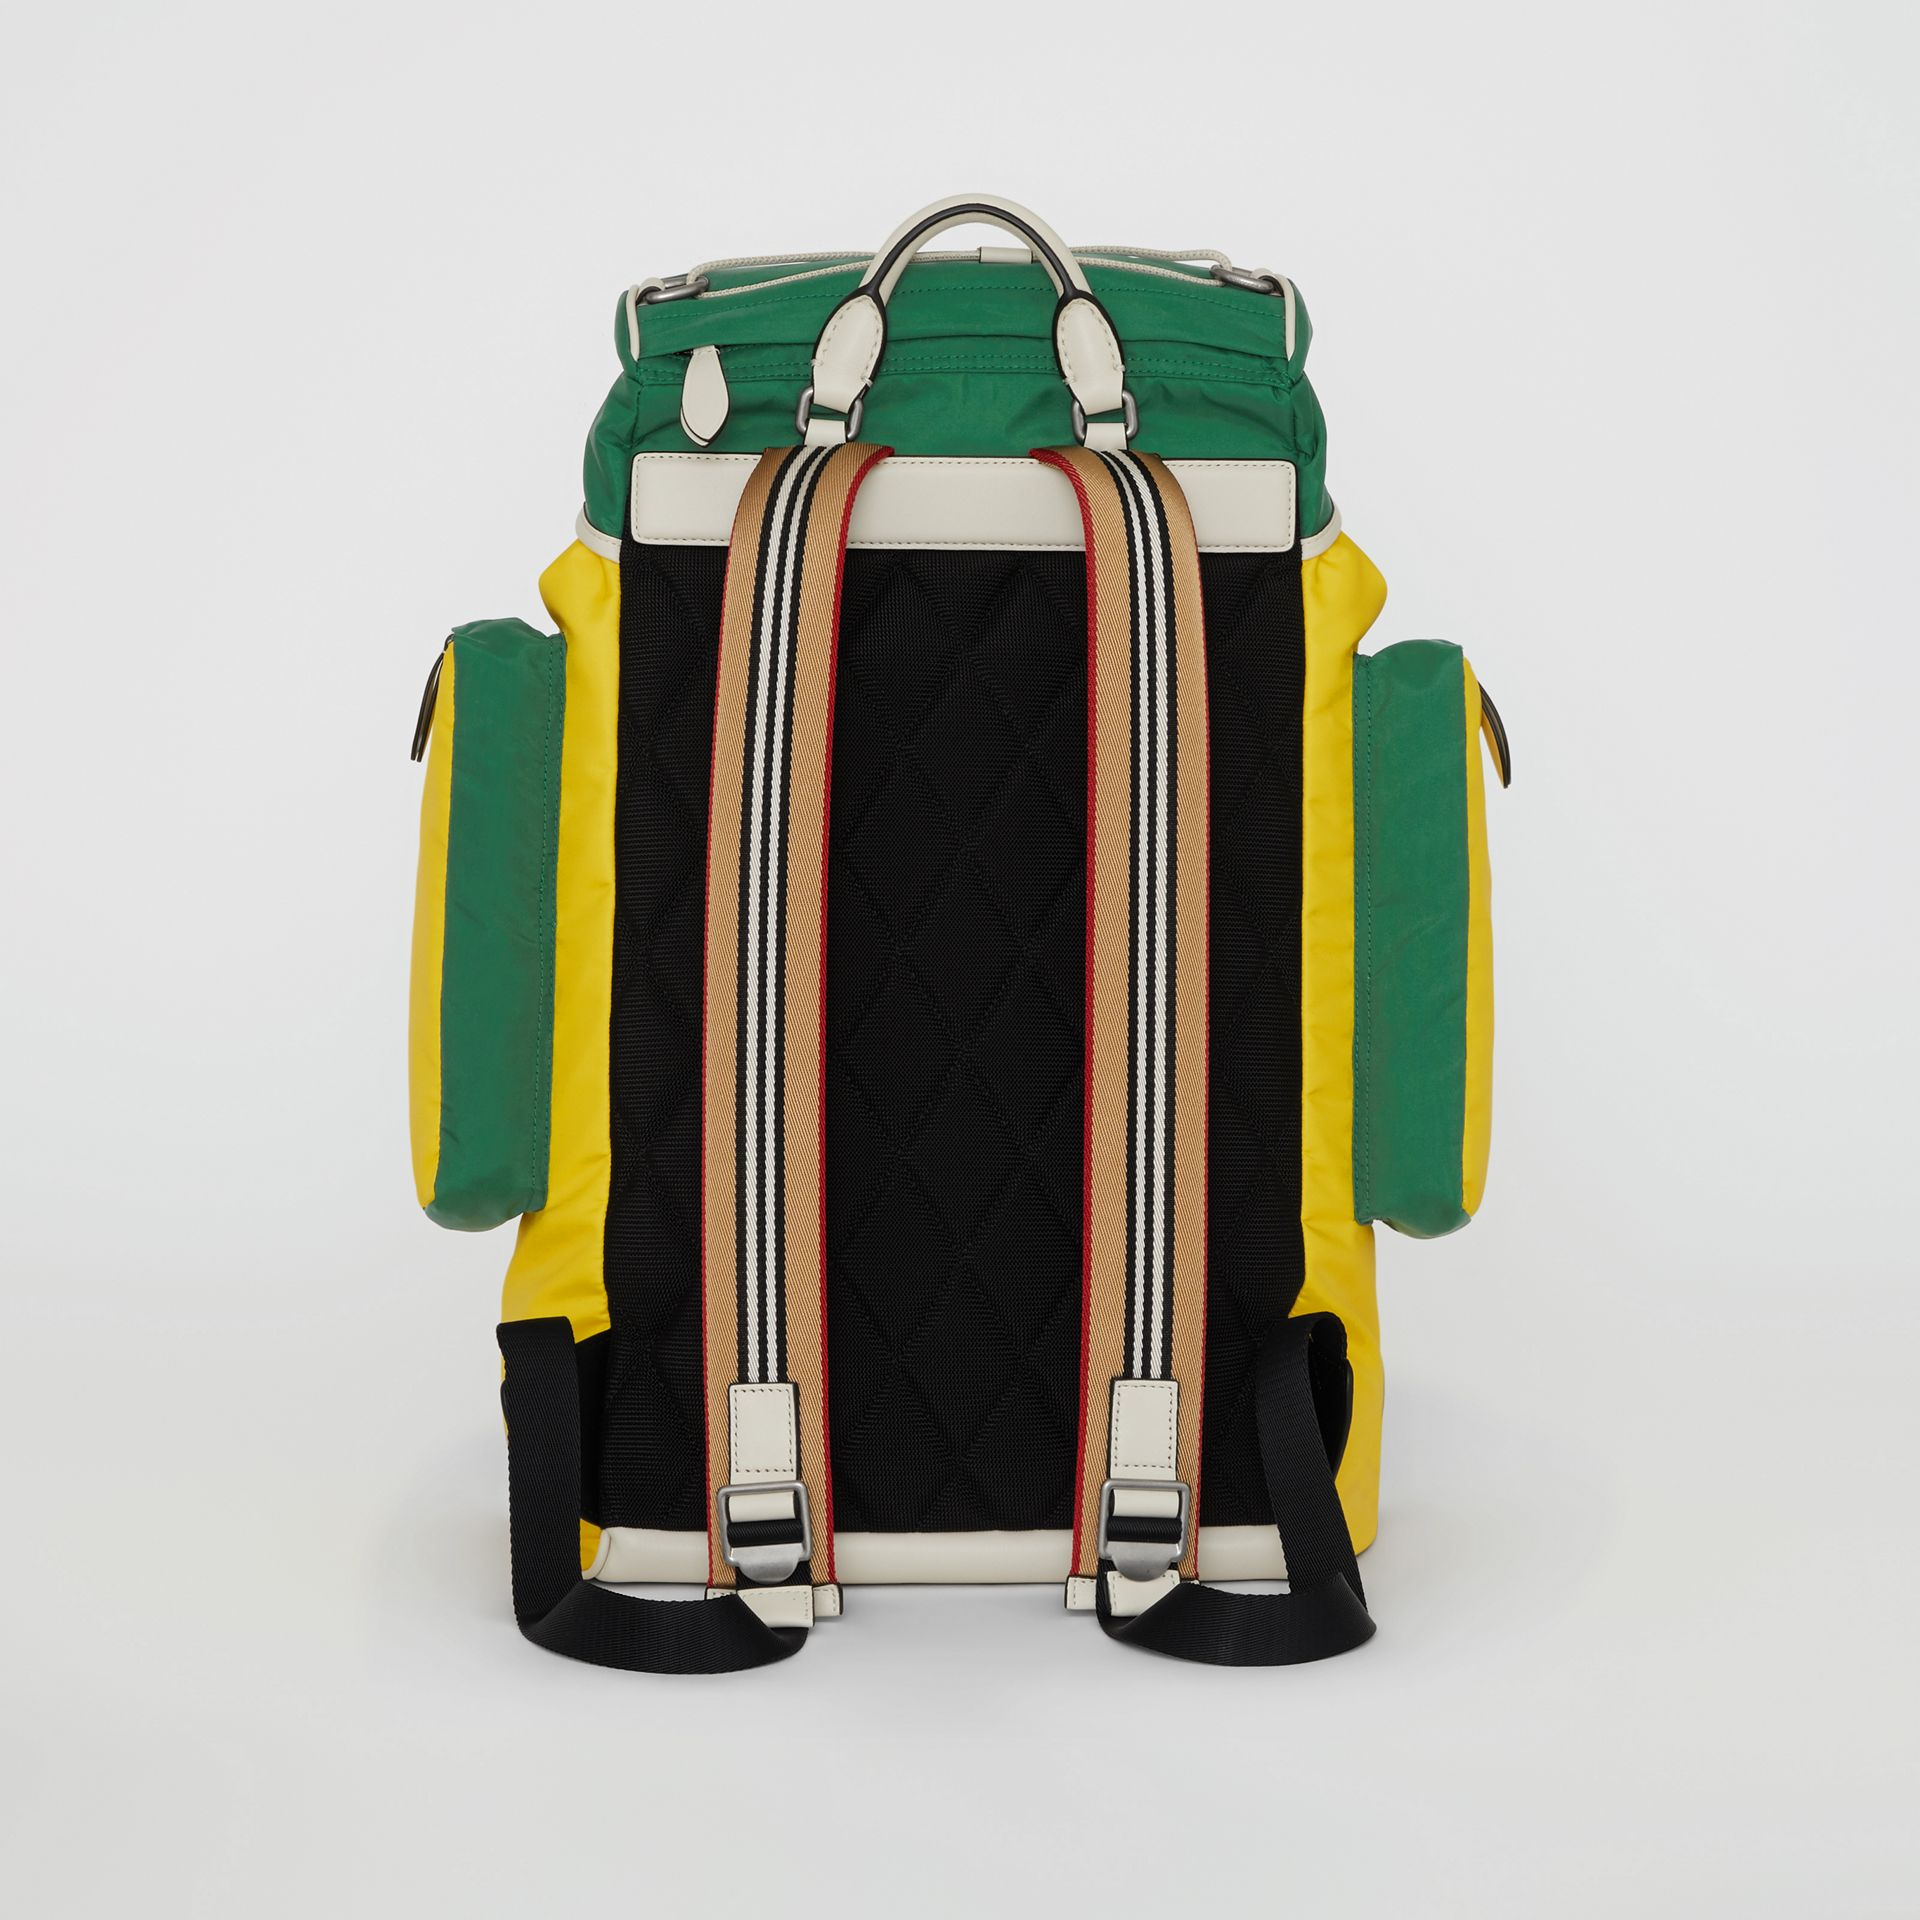 Tri-tone Nylon and Leather Backpack in Pine Green - Men | Burberry - gallery image 5